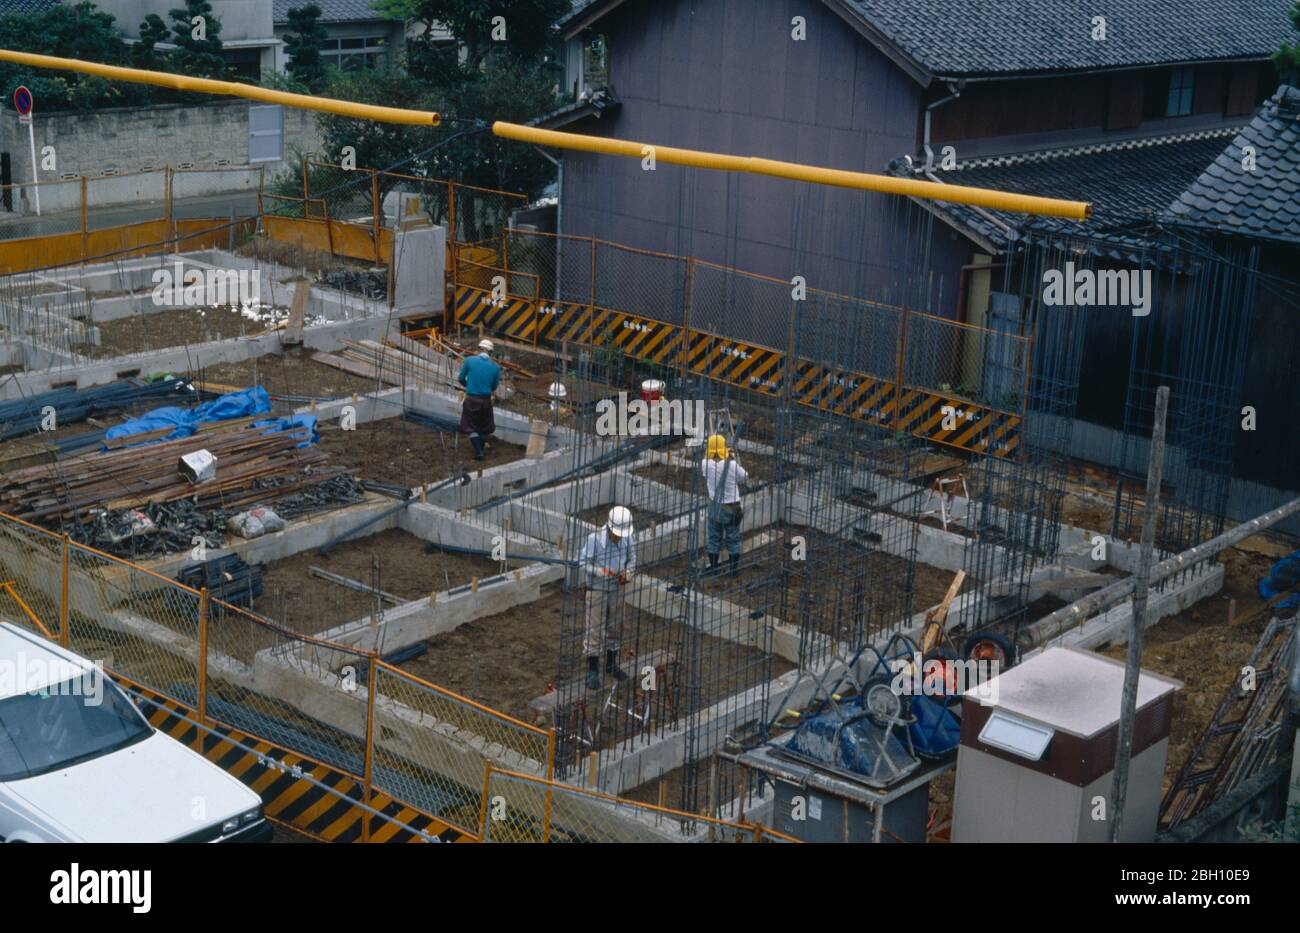 Japan Honshu General Men Working On Construction Of Building Foundations Stock Photo Alamy